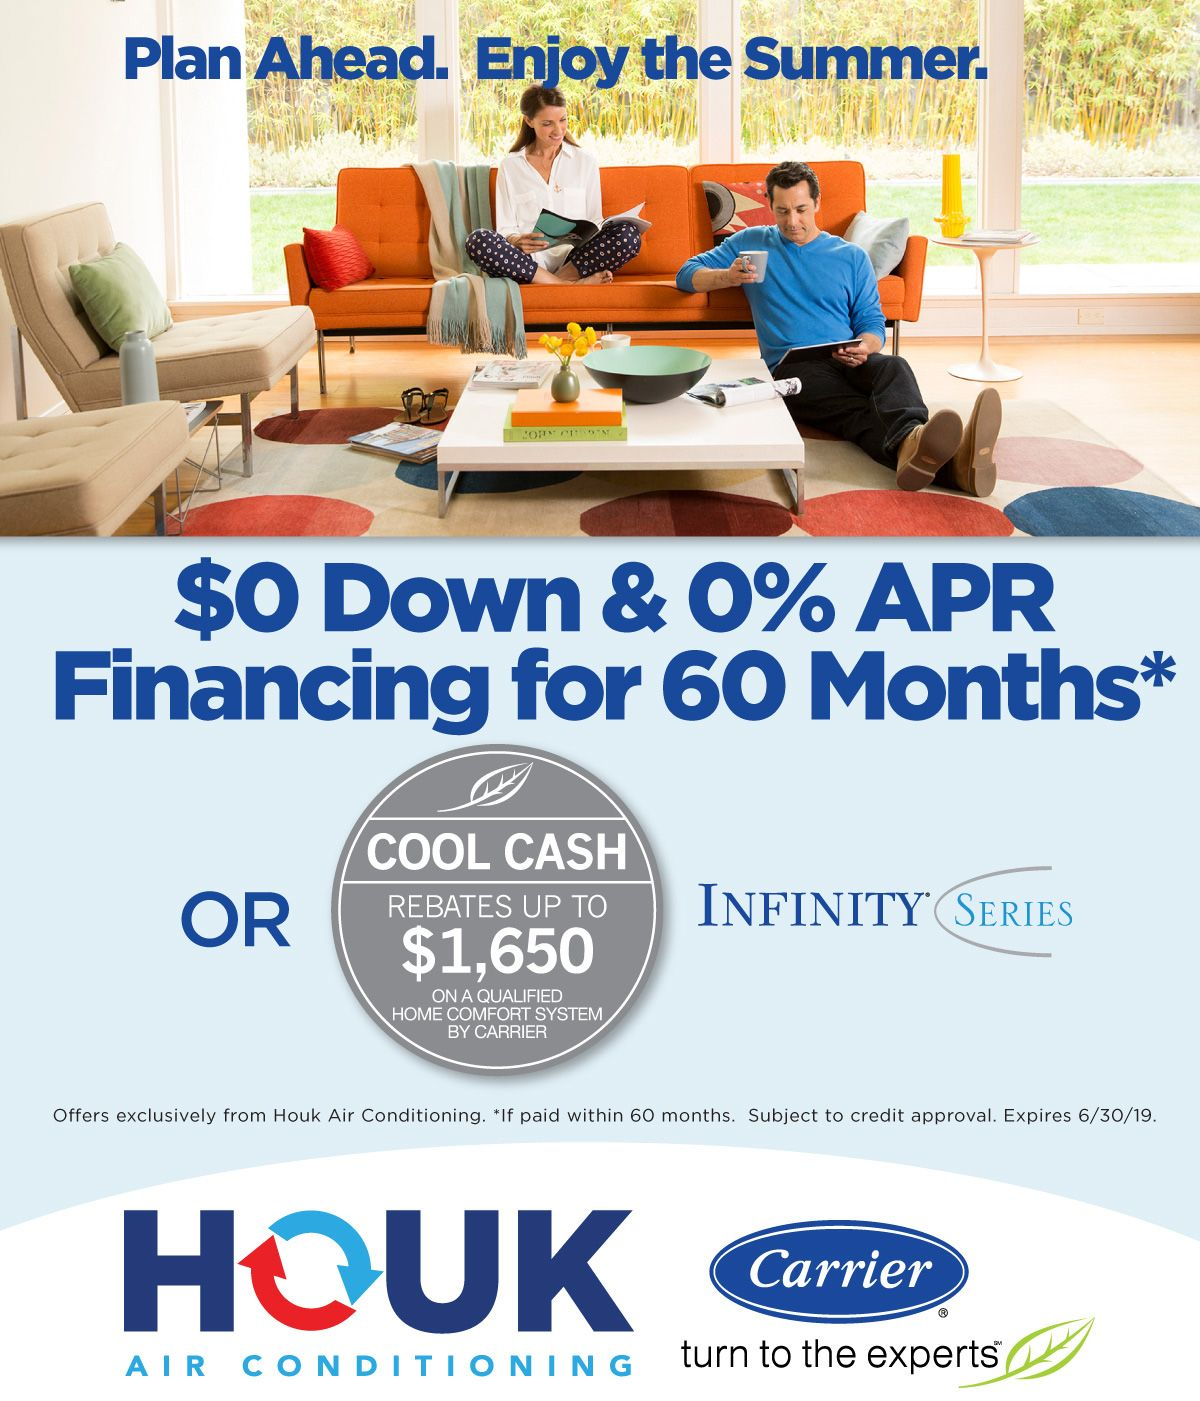 Enjoy the summer with exclusive offer from HOUK Air